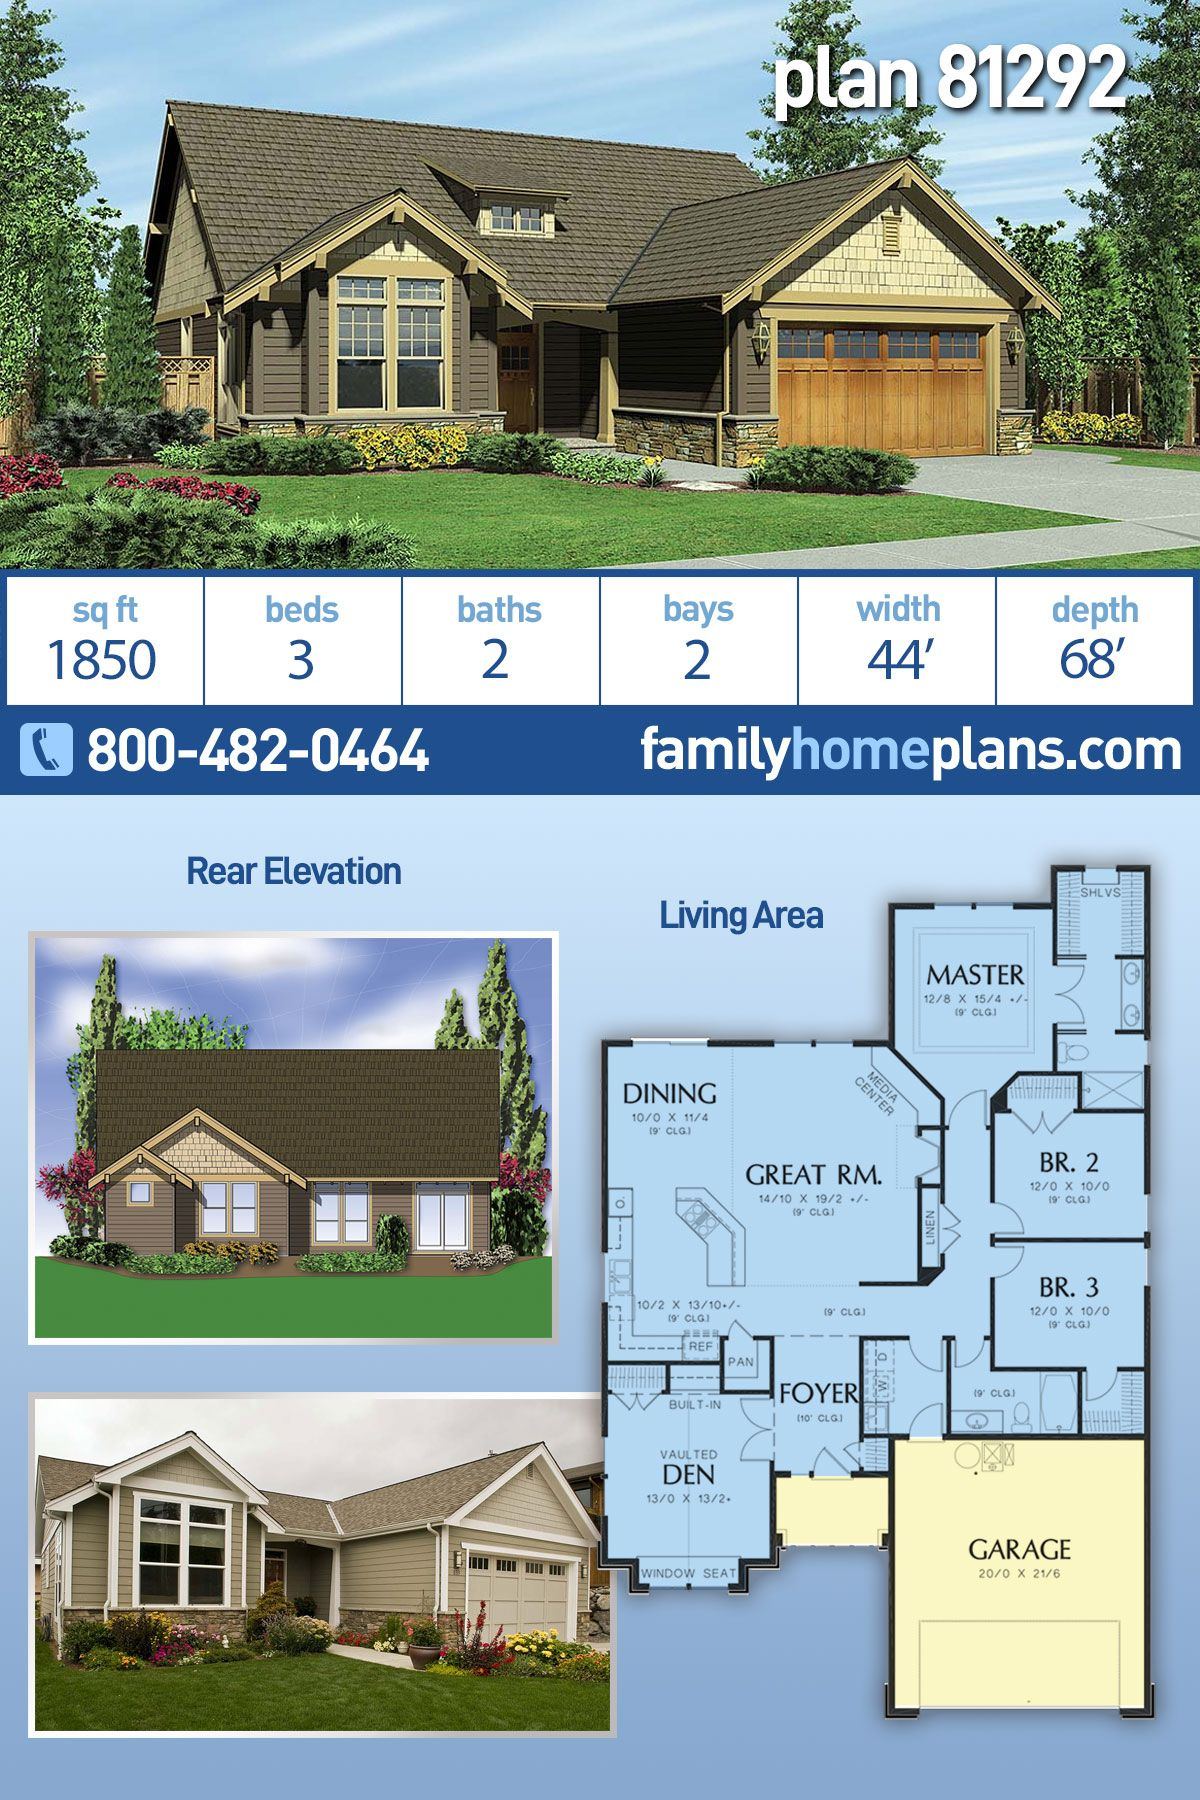 Narrow Lot Style House Plan 81292 With 3 Bed 2 Bath 2 Car Garage Craftsman House Plans Cottage House Plans Narrow Lot House Plans